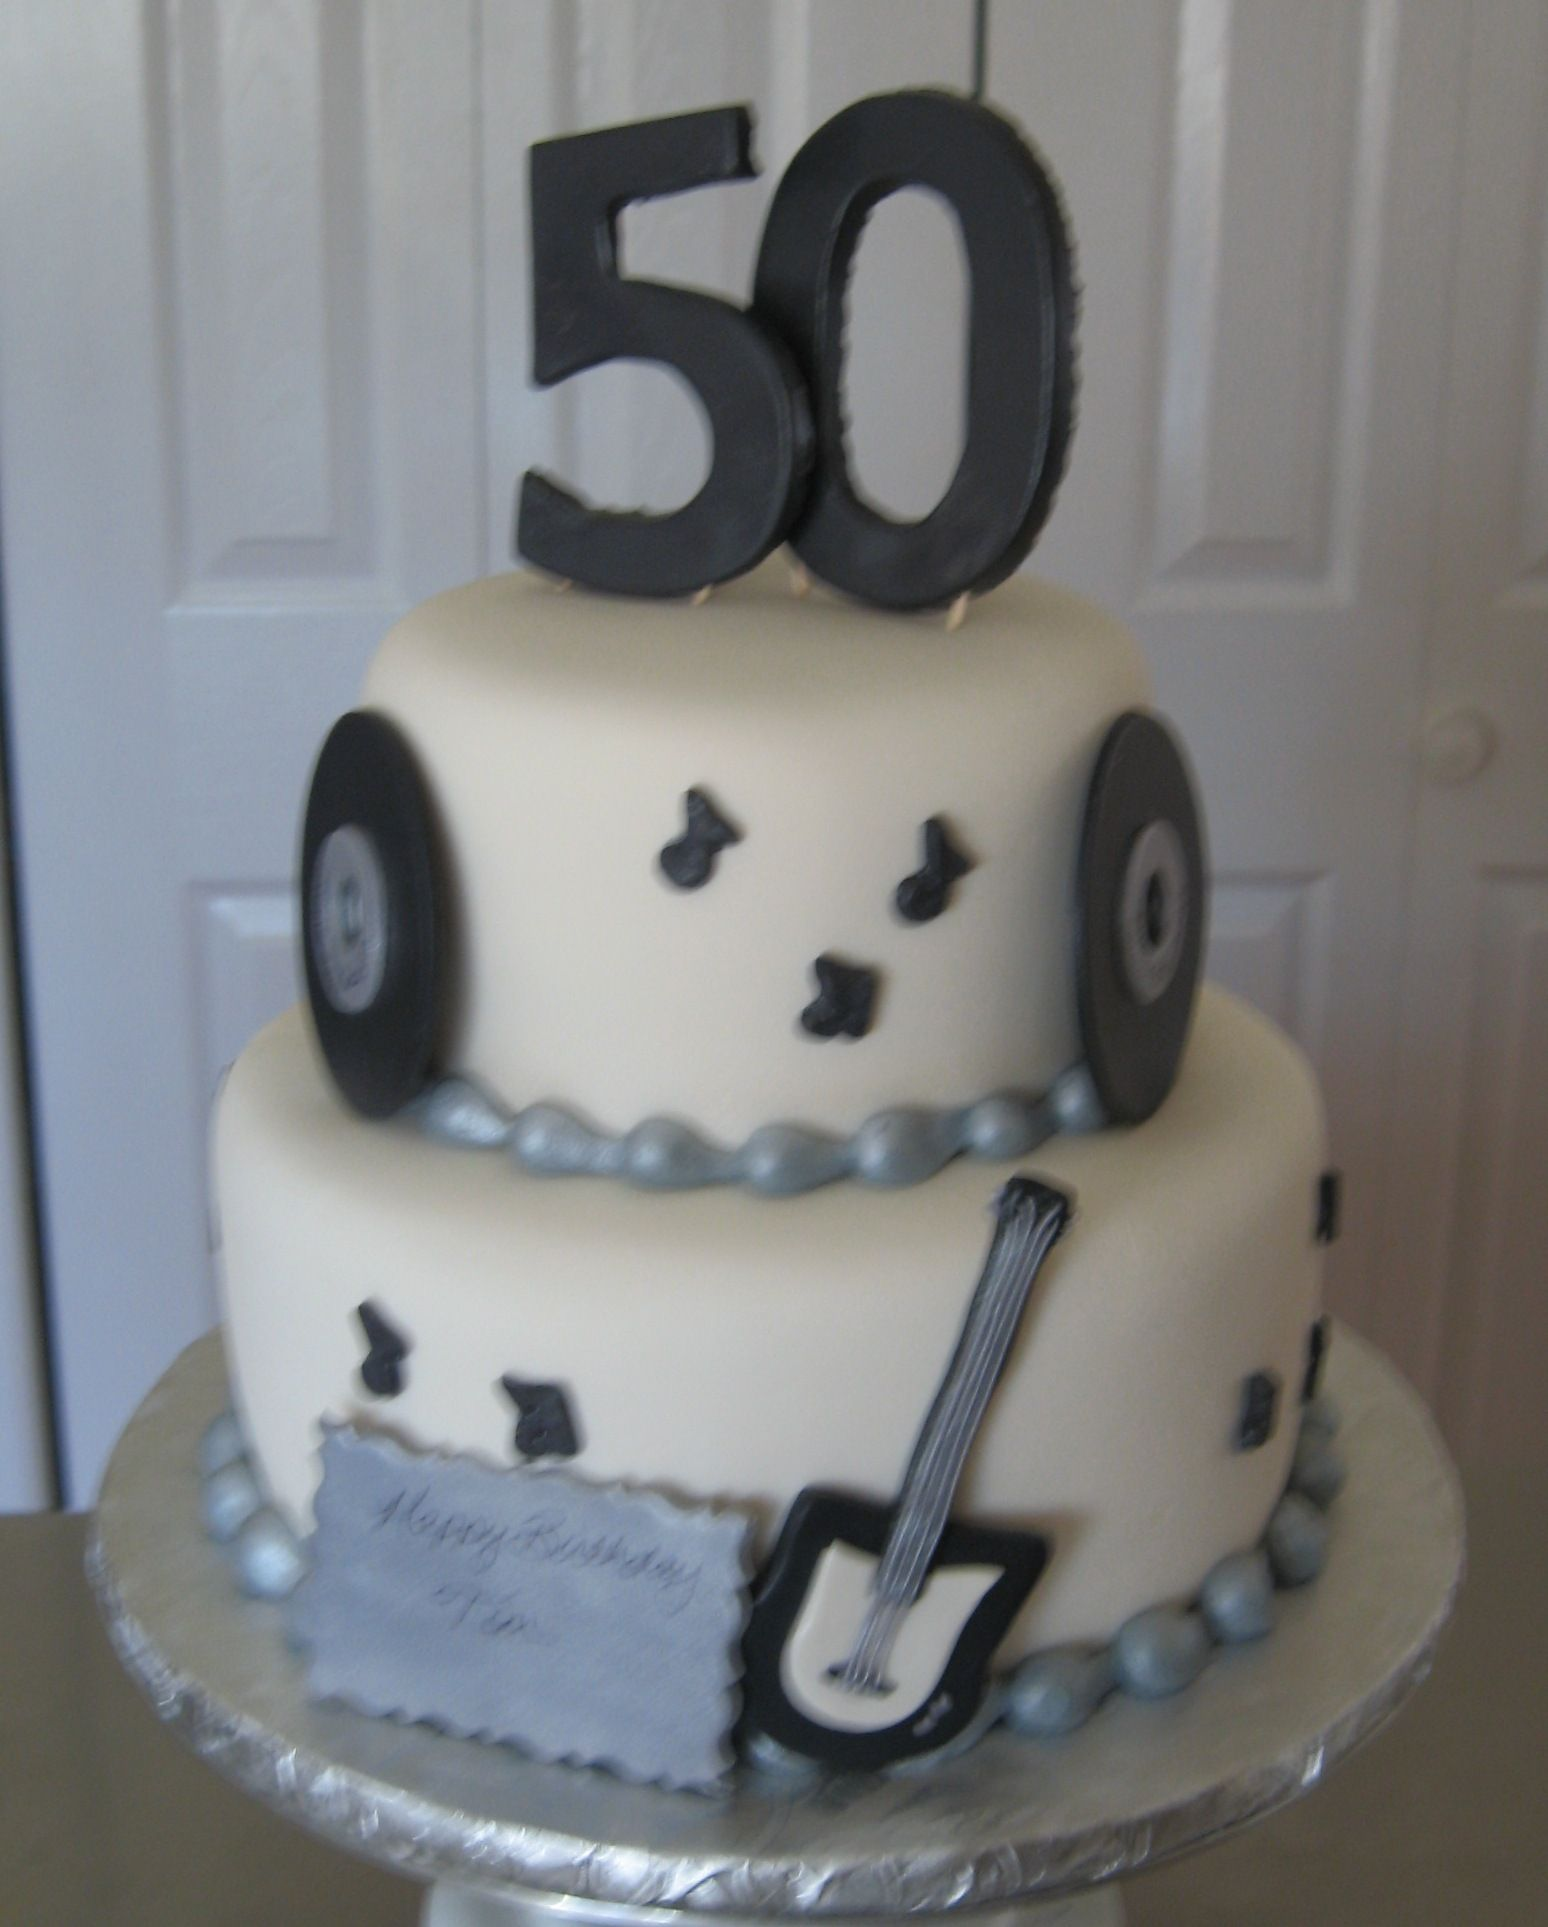 Enjoyable Music Man Cake With Images 70Th Birthday Cake 70Th Birthday Funny Birthday Cards Online Hendilapandamsfinfo